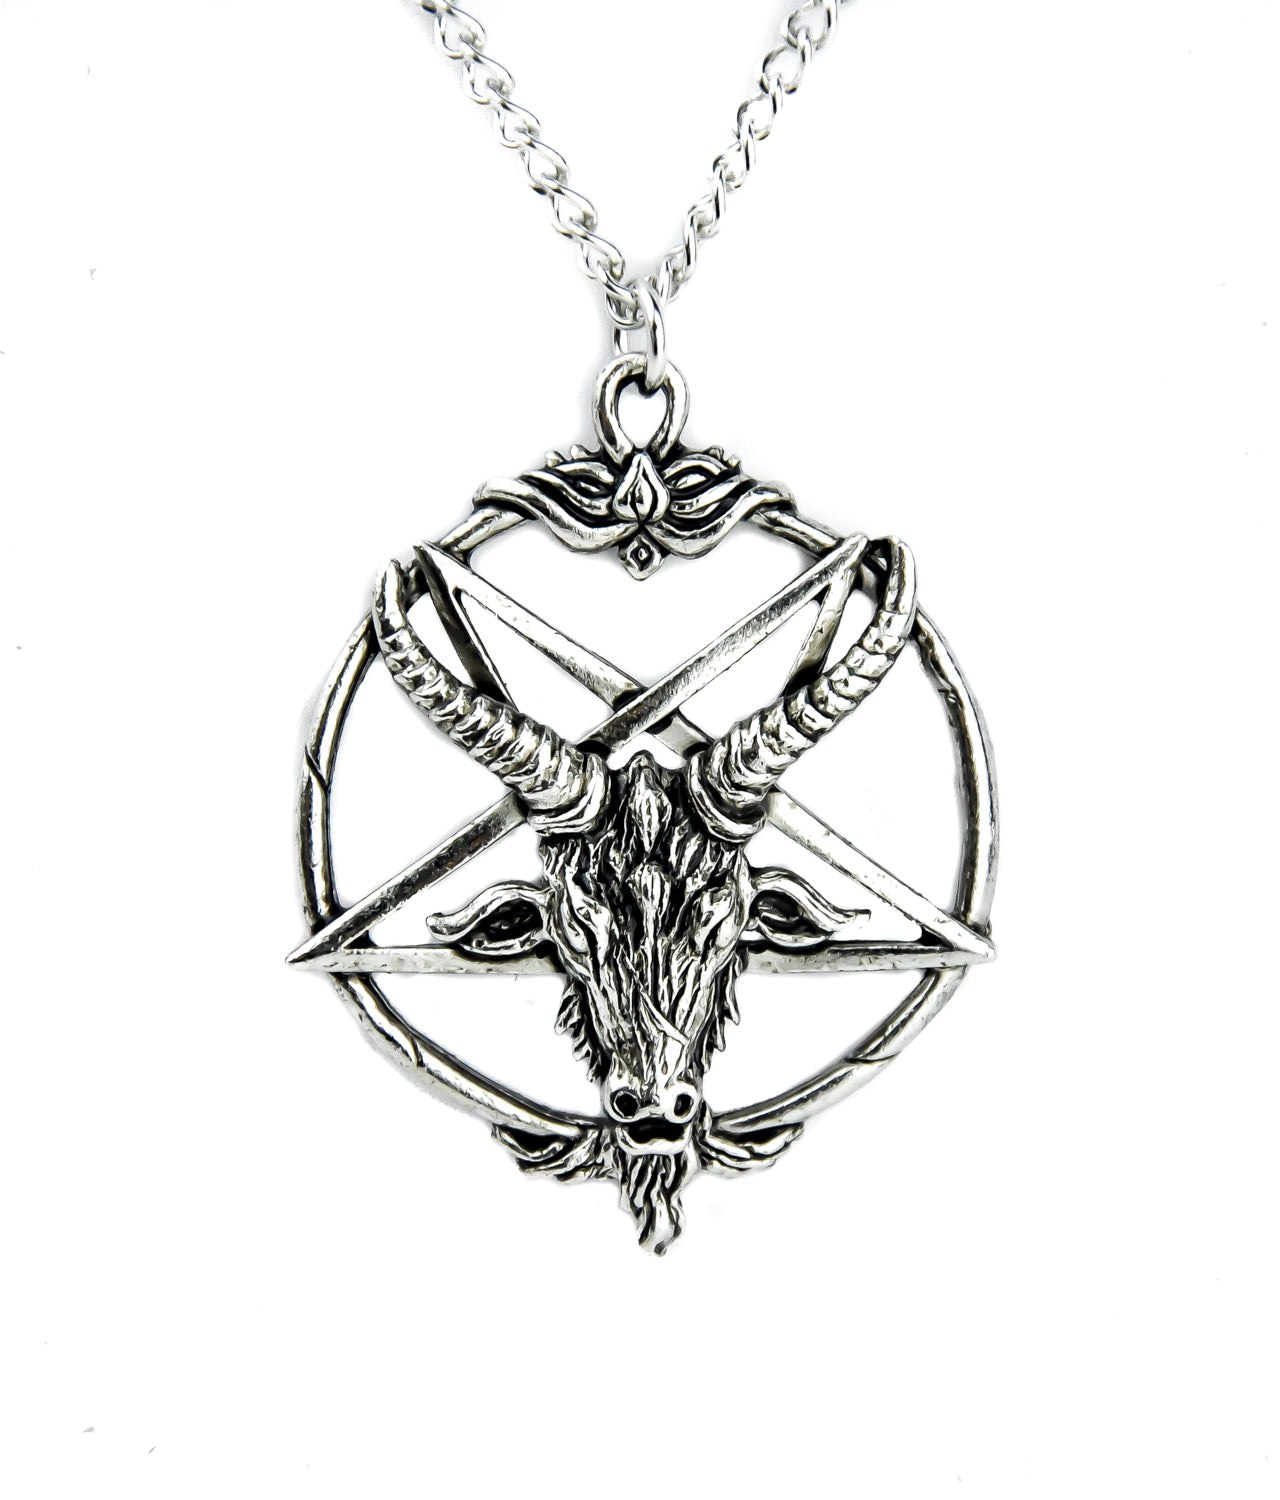 Classic Baphomet Inverted Pentagram Necklace Alternative Occult Jewelry